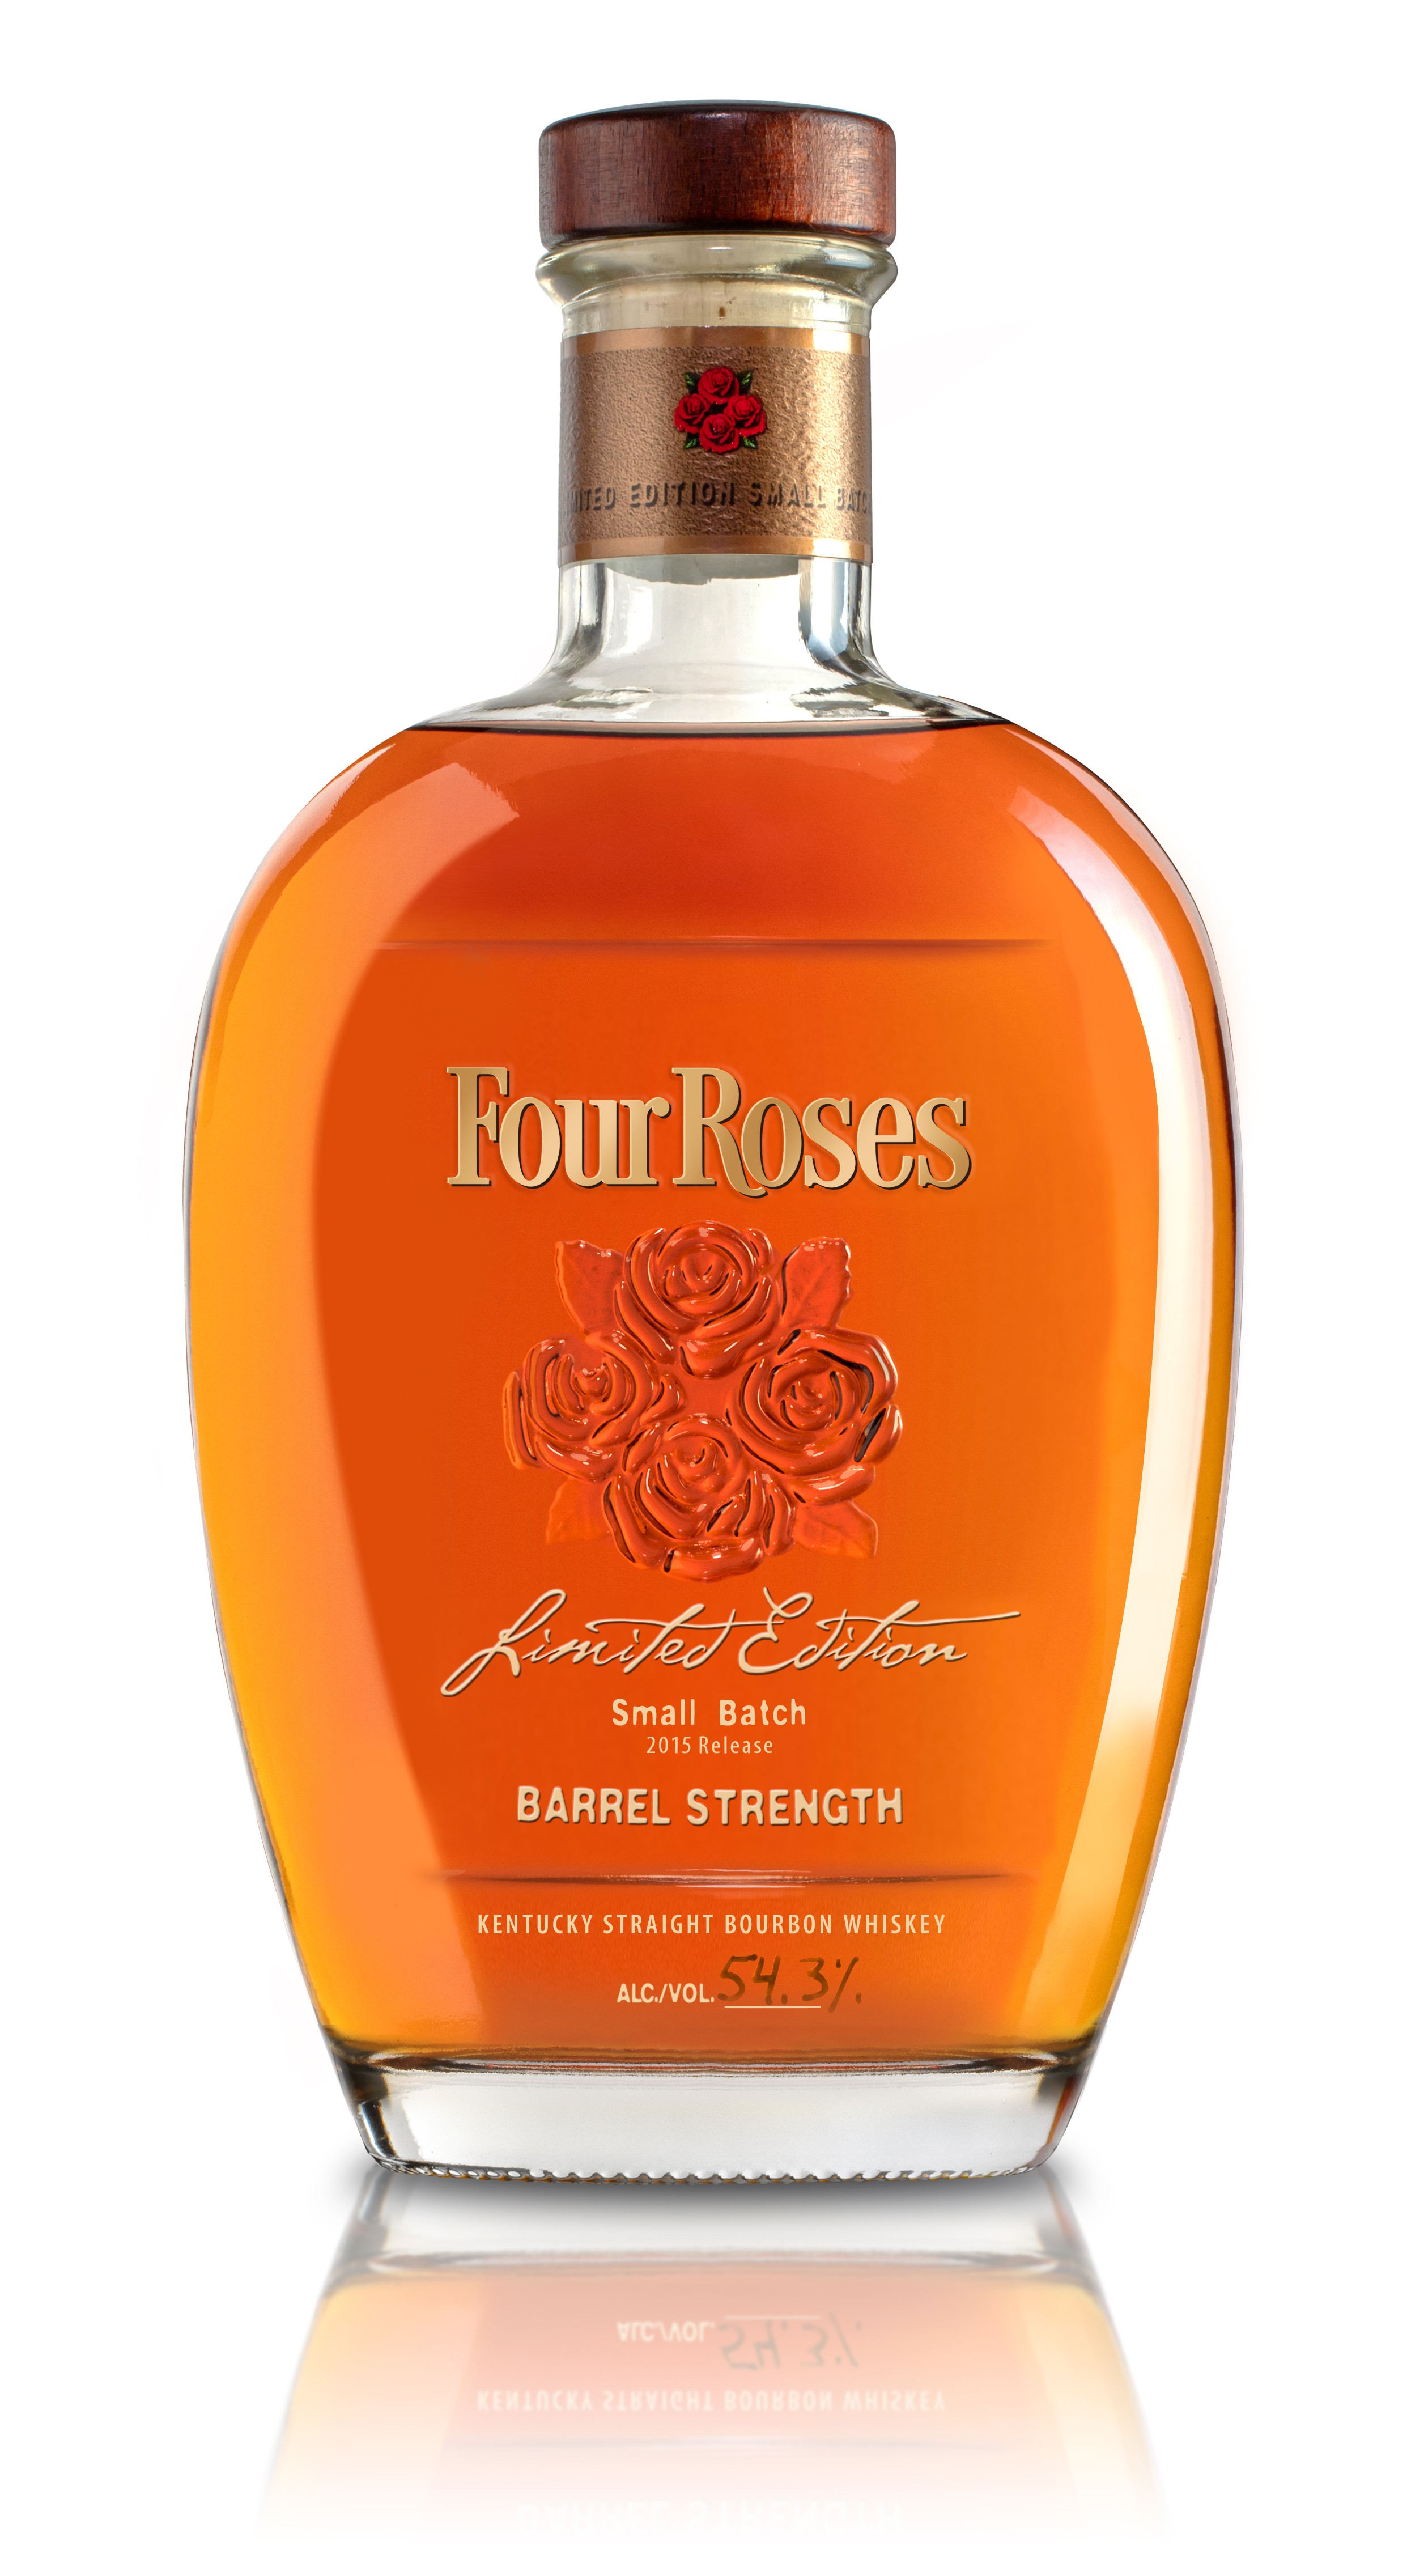 Four Roses Limited Edition Small Batch Bourbon 2015 Edition